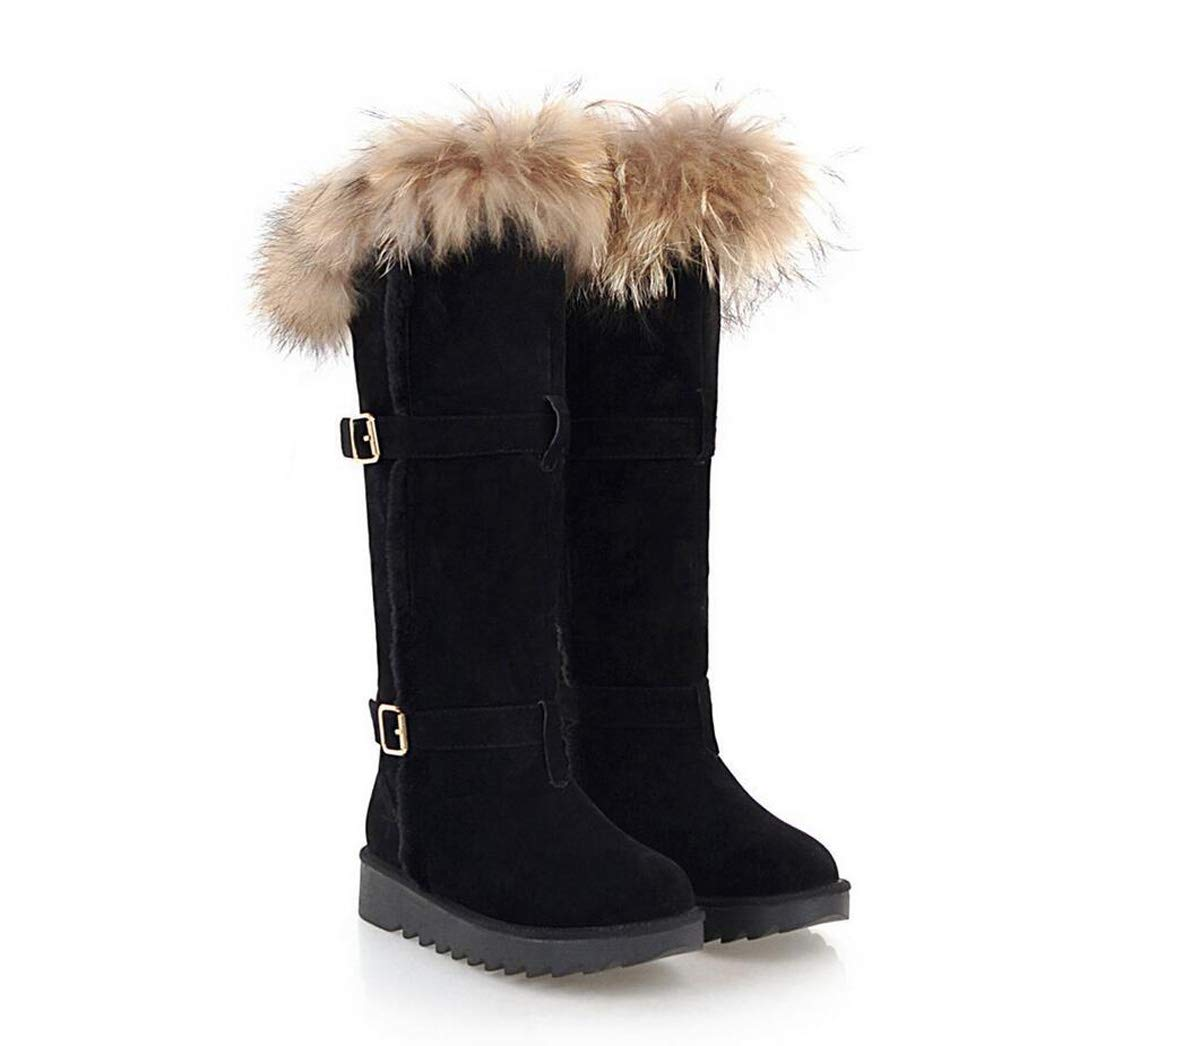 A Womens Boots Mid Calf Knee high Buckle Snow Boots Winter Warm Flat Heel Boots